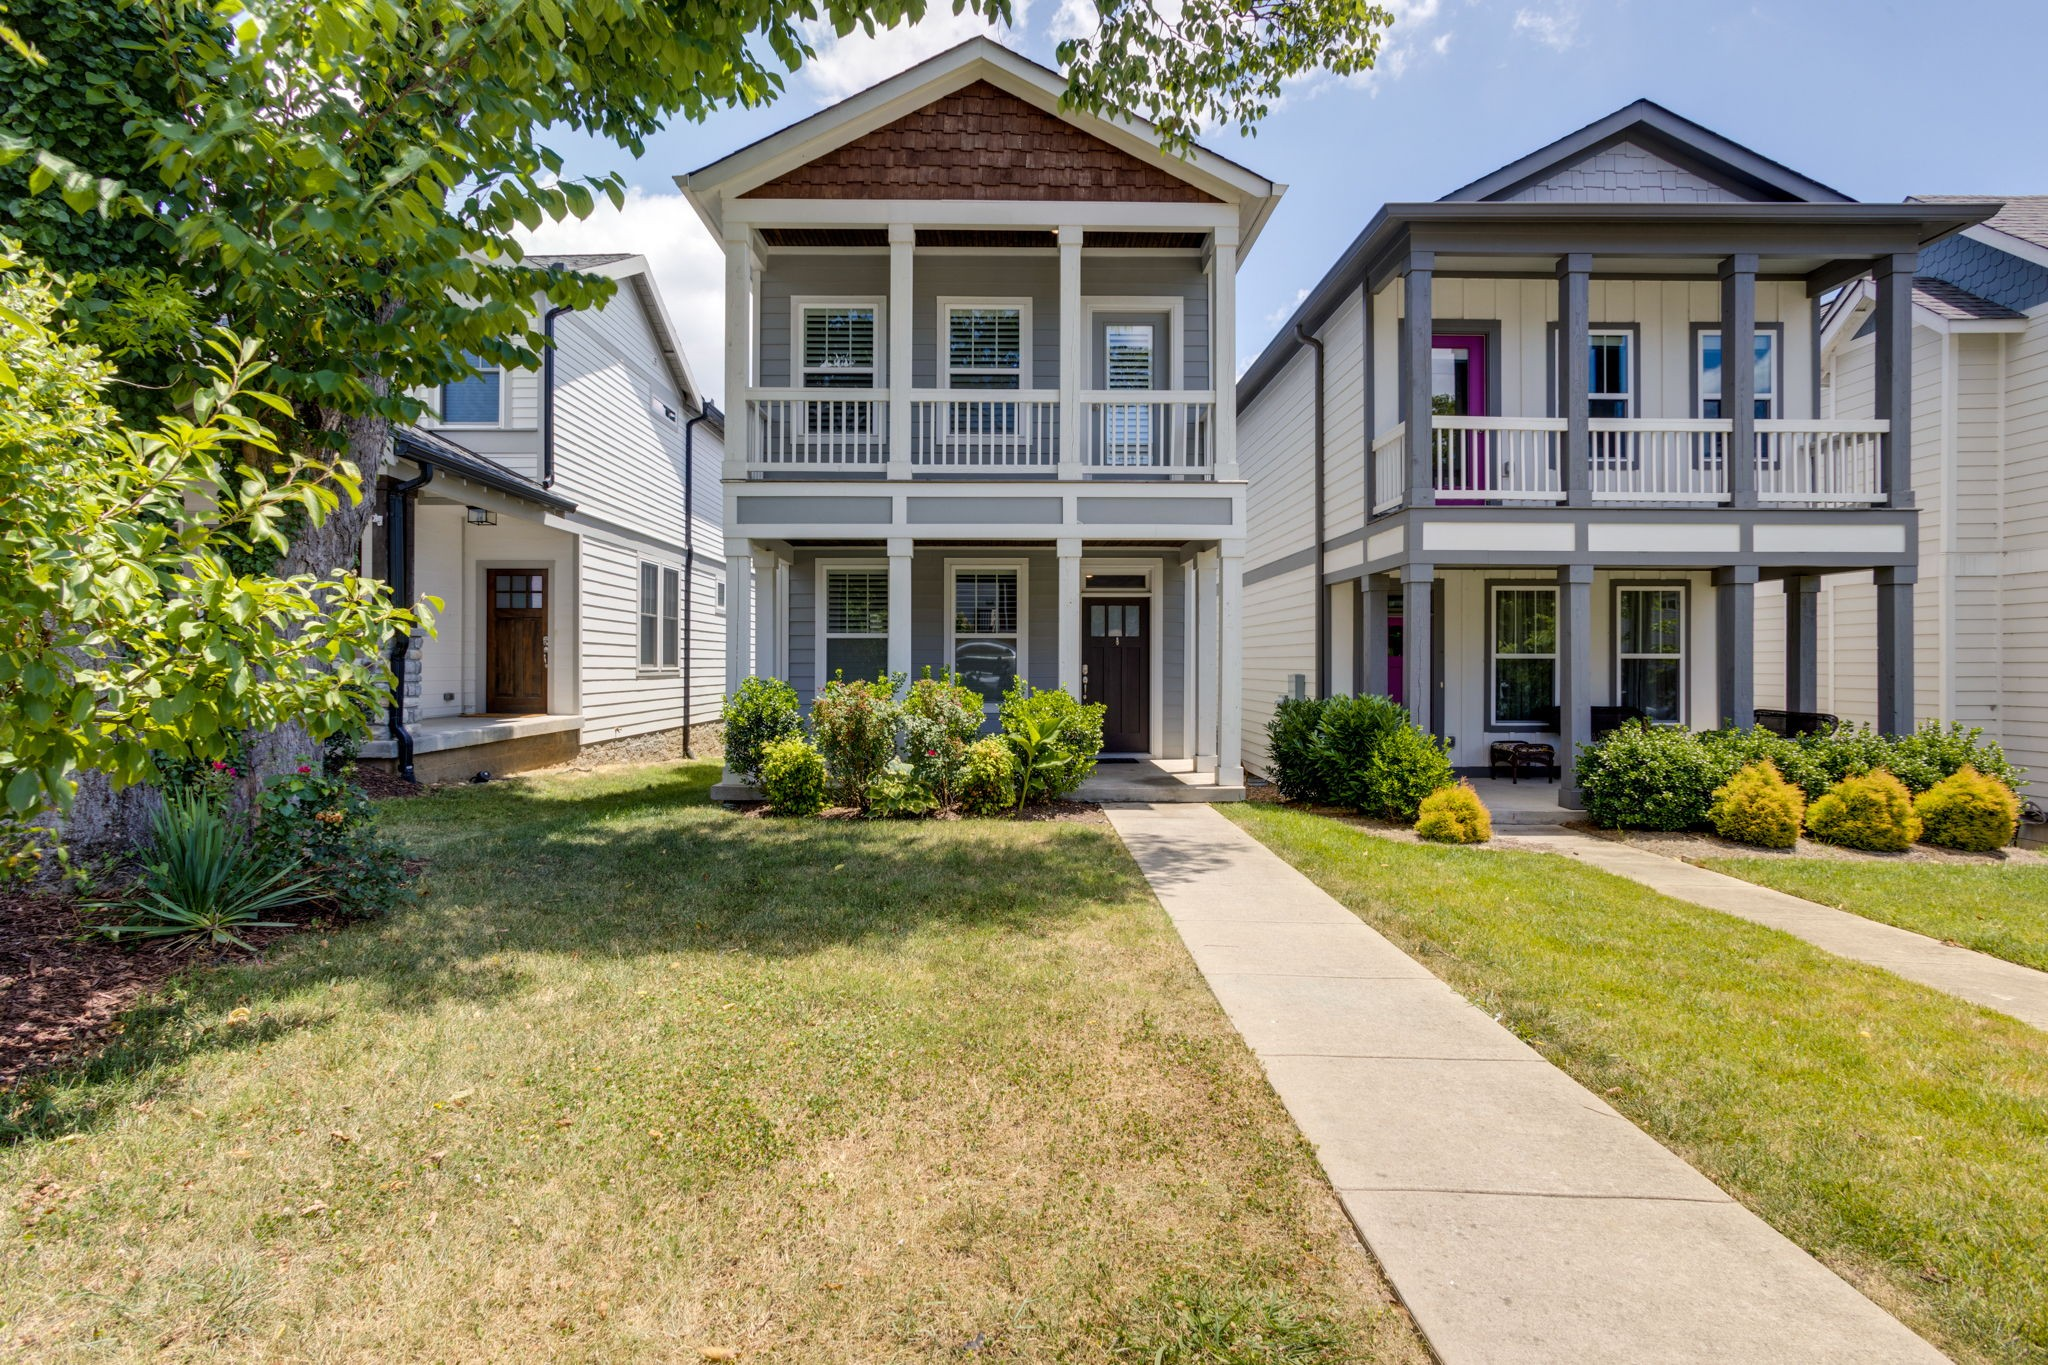 2204A 11th ave, S Property Photo - Nashville, TN real estate listing